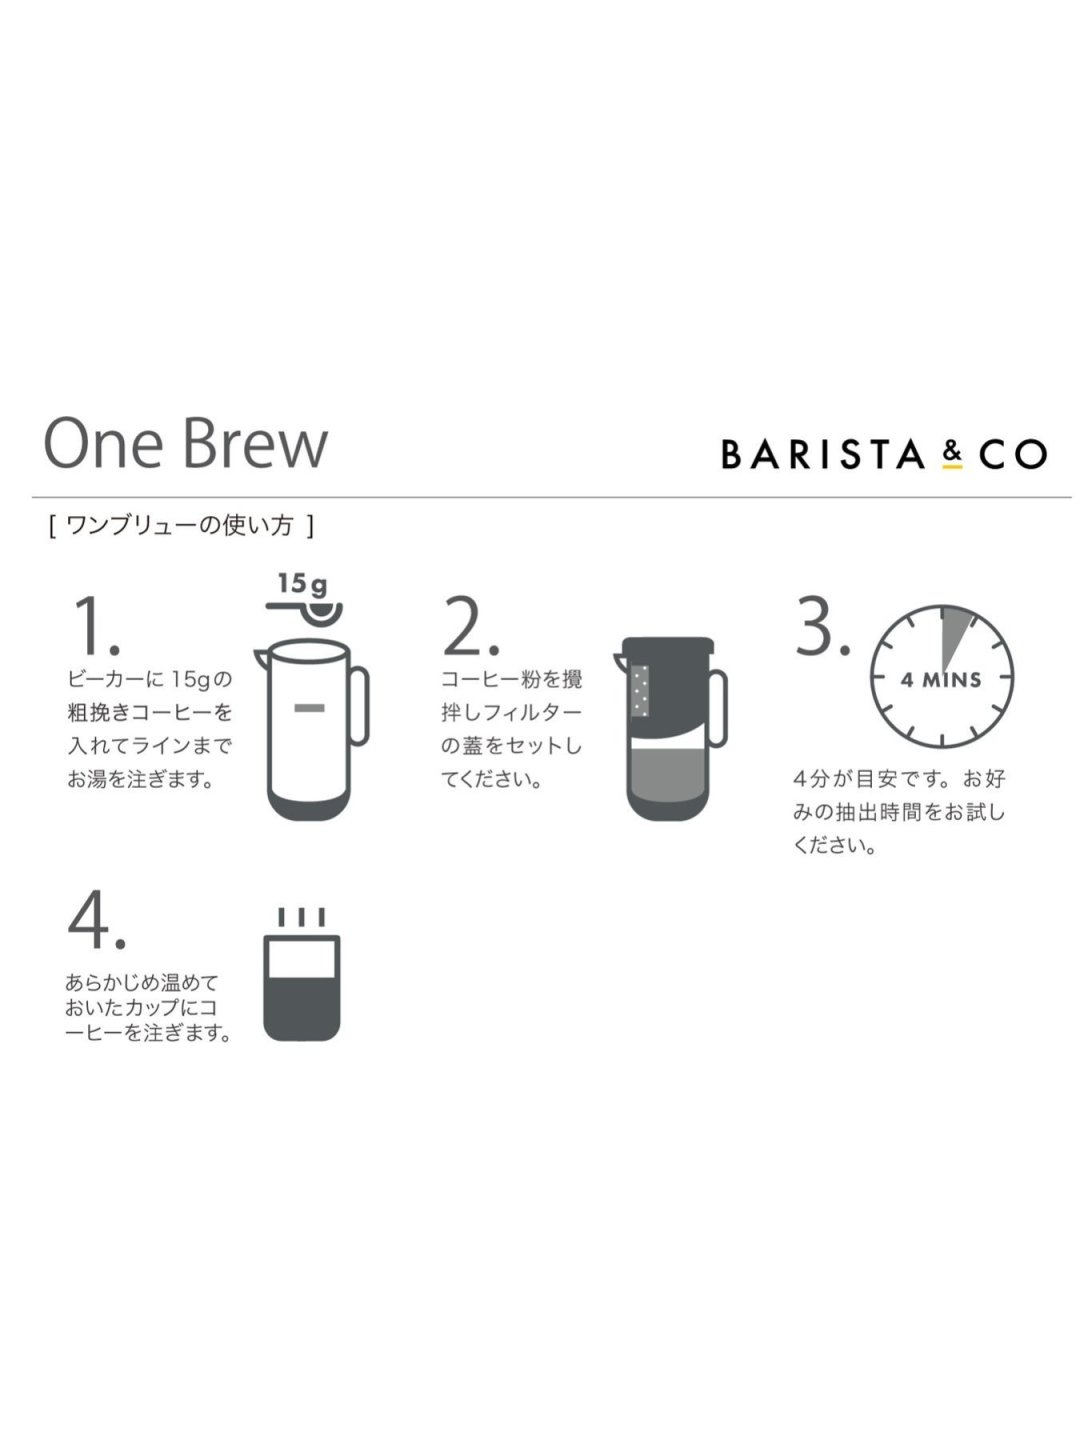 BARISTA & CO One Brew